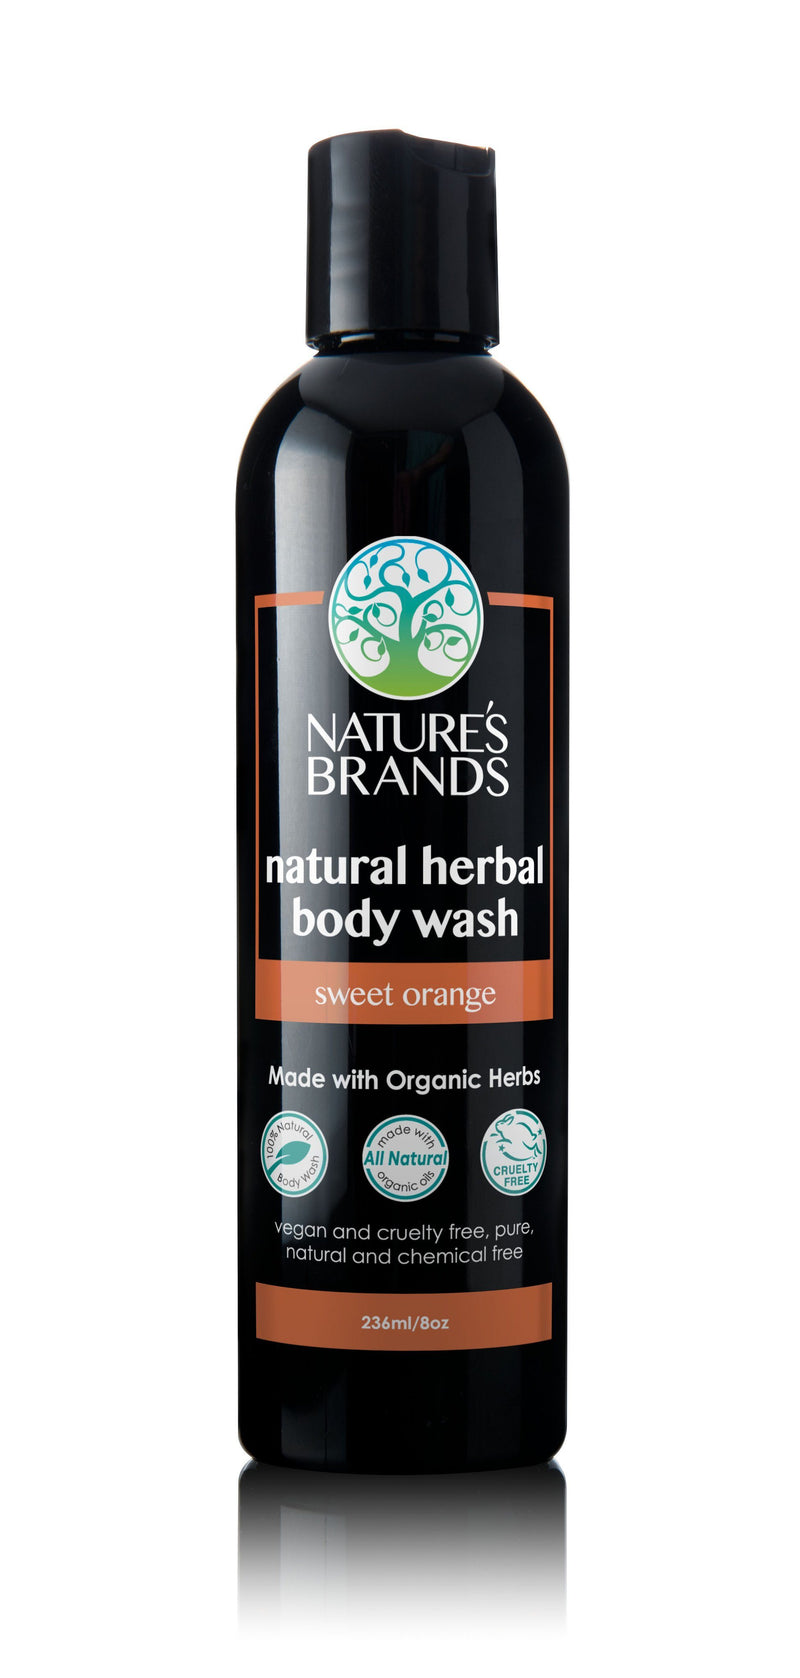 Herbal Choice Mari Organic Herbal Body Wash, Sweet Orange - Herbal Choice Mari Organic Herbal Body Wash, Sweet Orange - Herbal Choice Mari Organic Herbal Body Wash, Sweet Orange